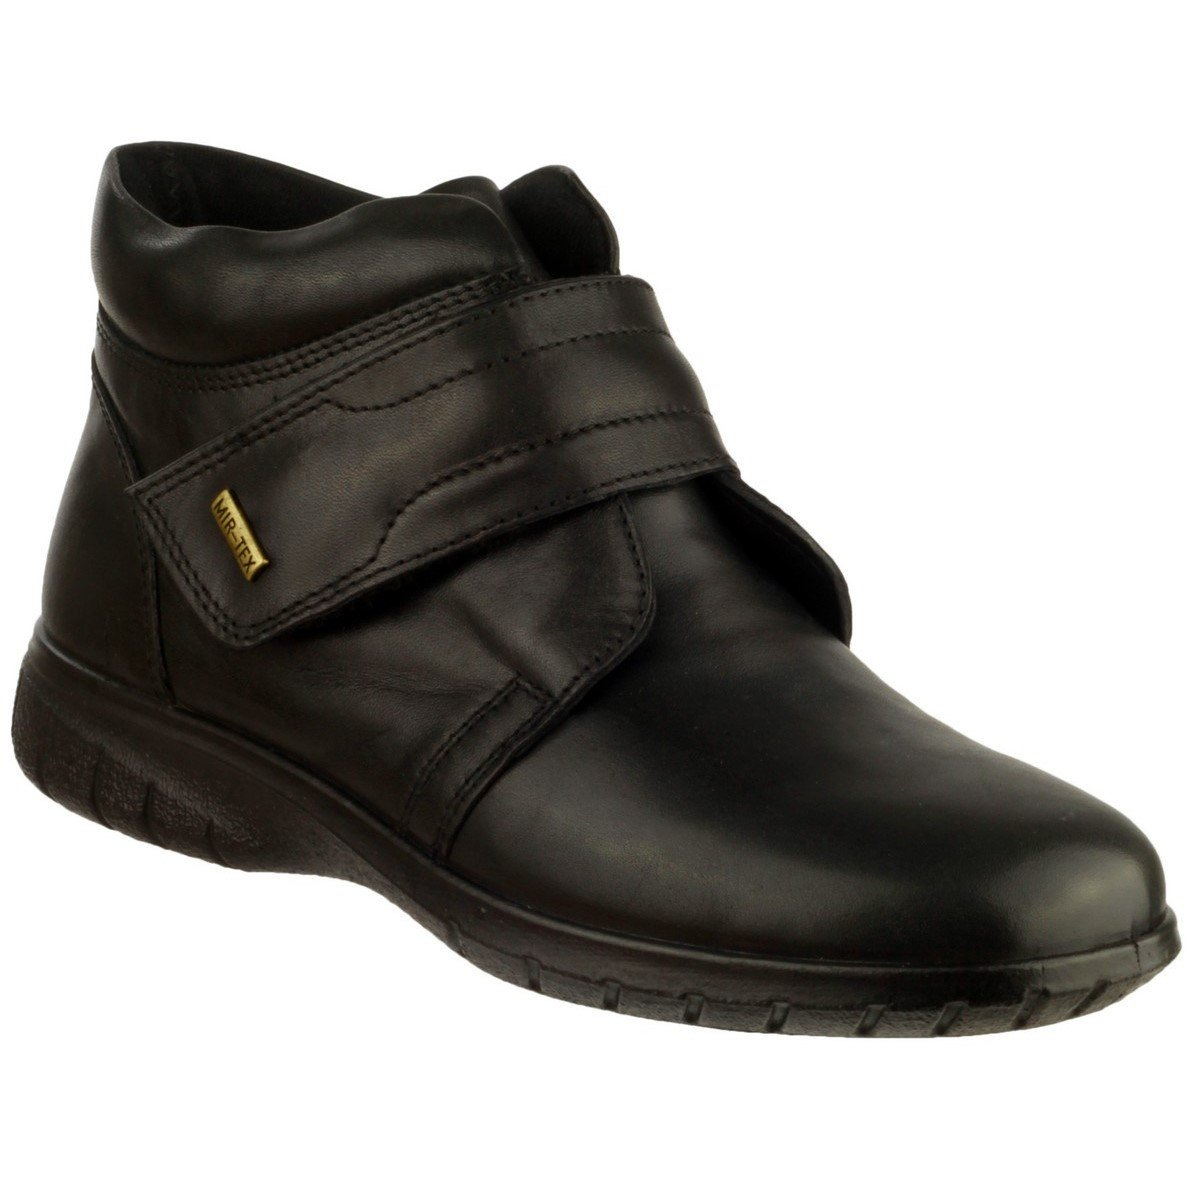 Cotswold Women's Chalford 2 Ankle Boot Various Colours 32977 - Black 6